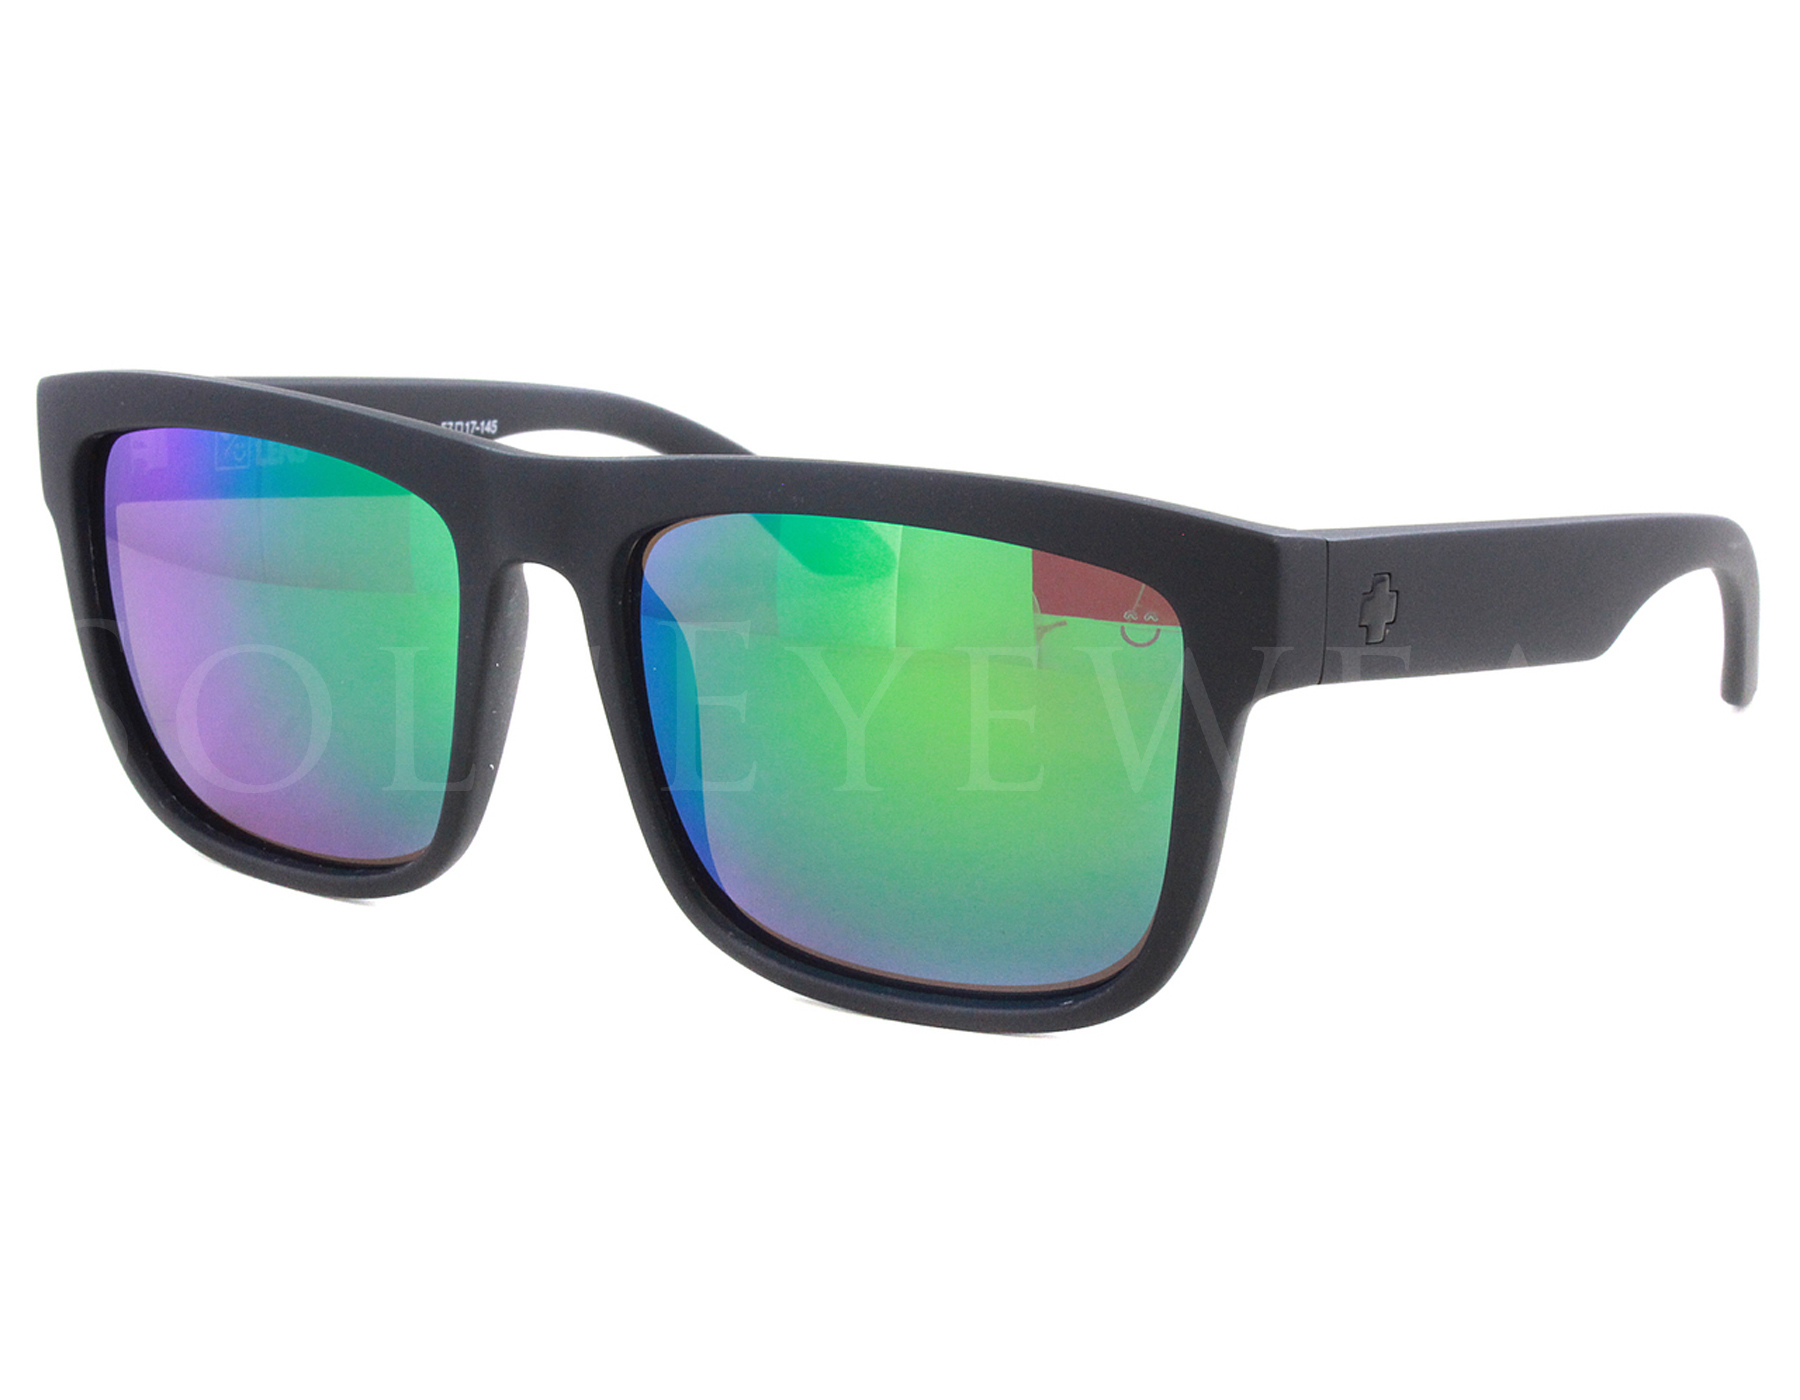 Details about NEW SPY OPTICS Discord Matte Black   Happy Grey Green  673119374861 Sunglasses 1748d6a62b